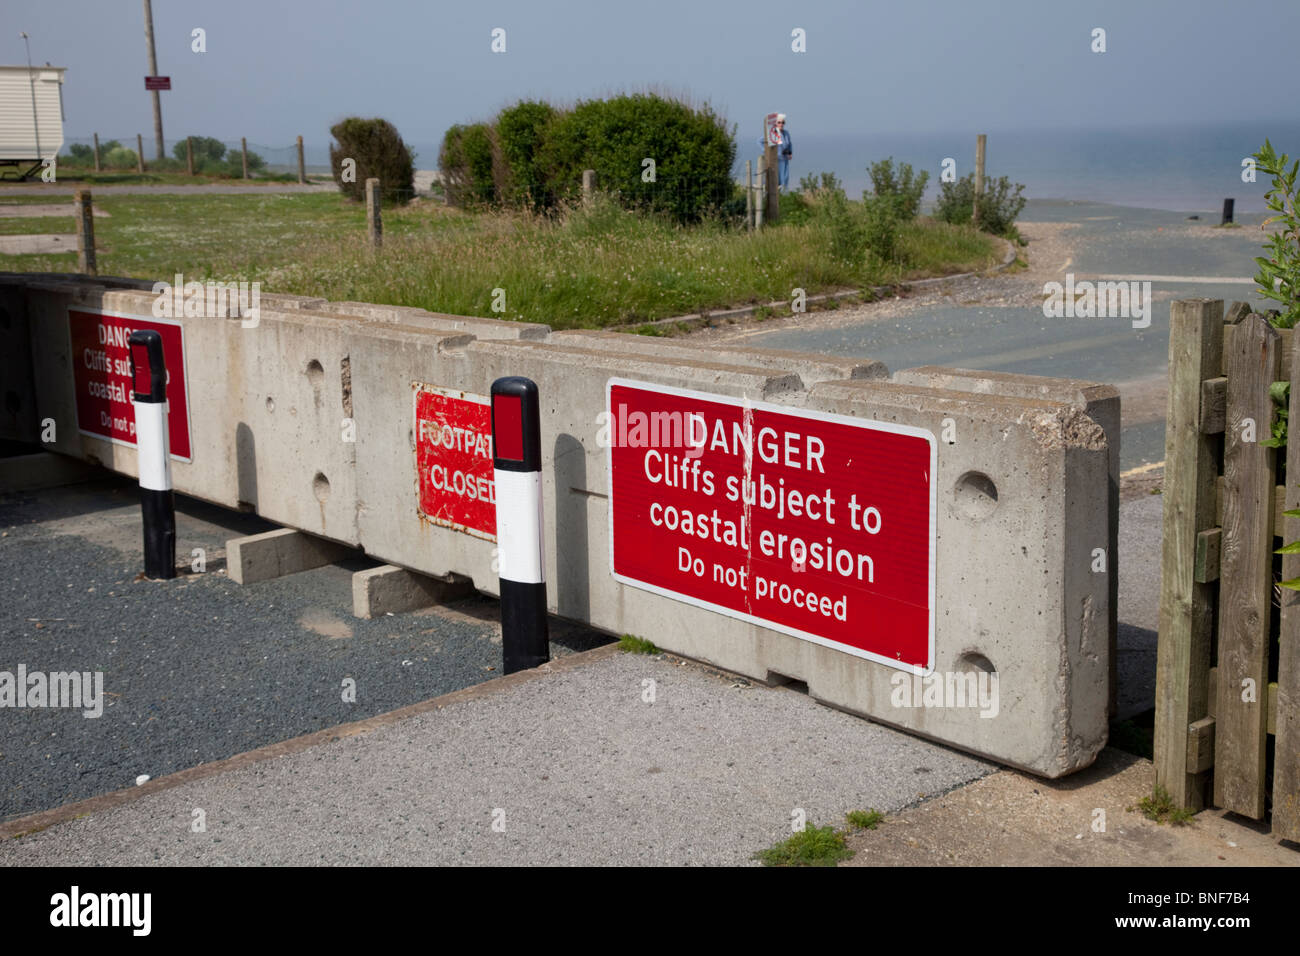 Danger collapsing cliffs signs on blocked coast road Skipsea East Riding of Yorskhire UK - Stock Image